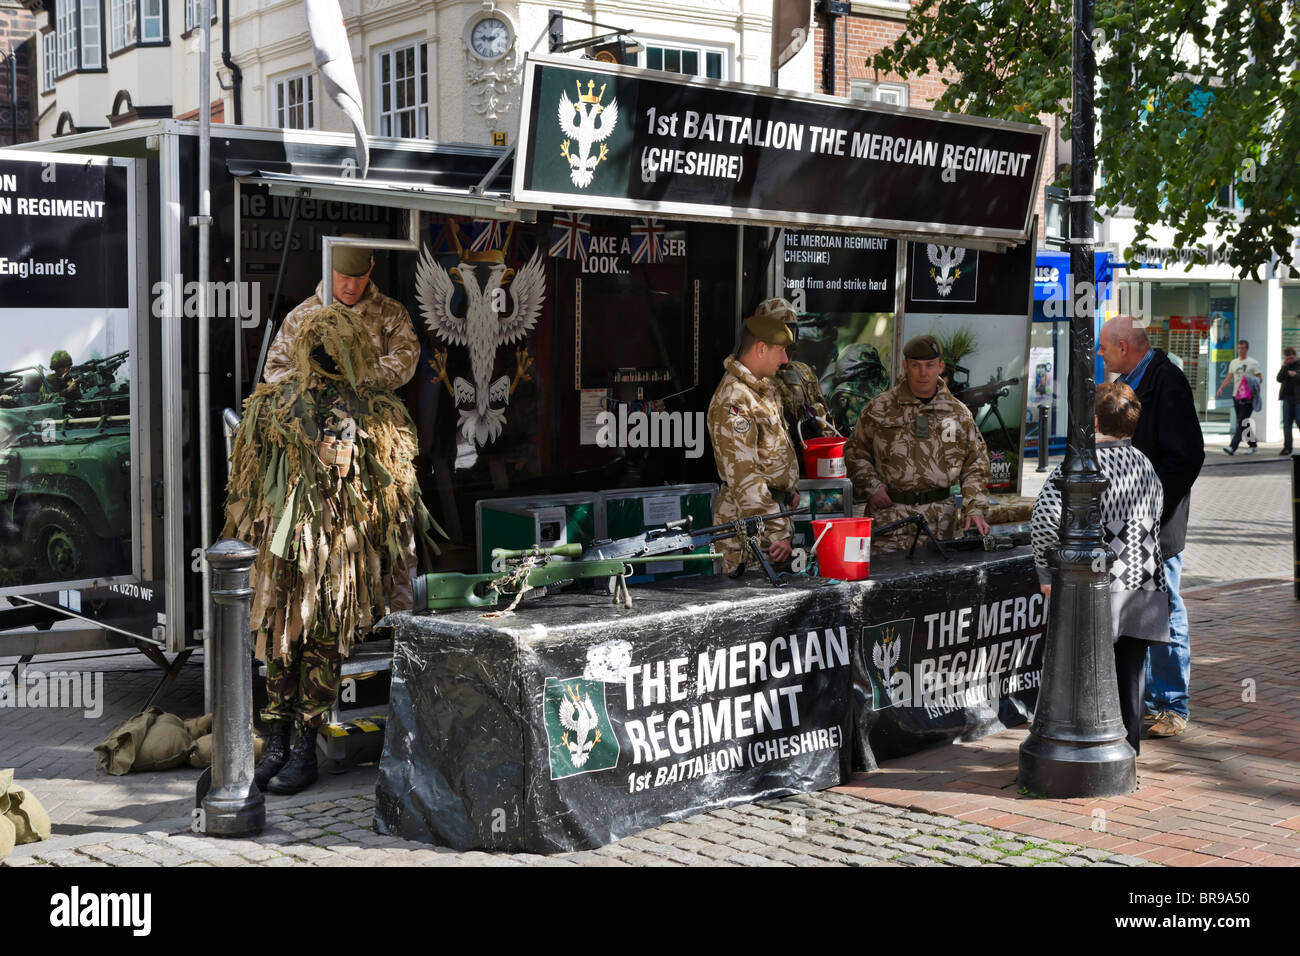 Army recruiters for the 1s Battalion the Mercian Regiment (Cheshire) in Chester town centre, Cheshire, England, - Stock Image